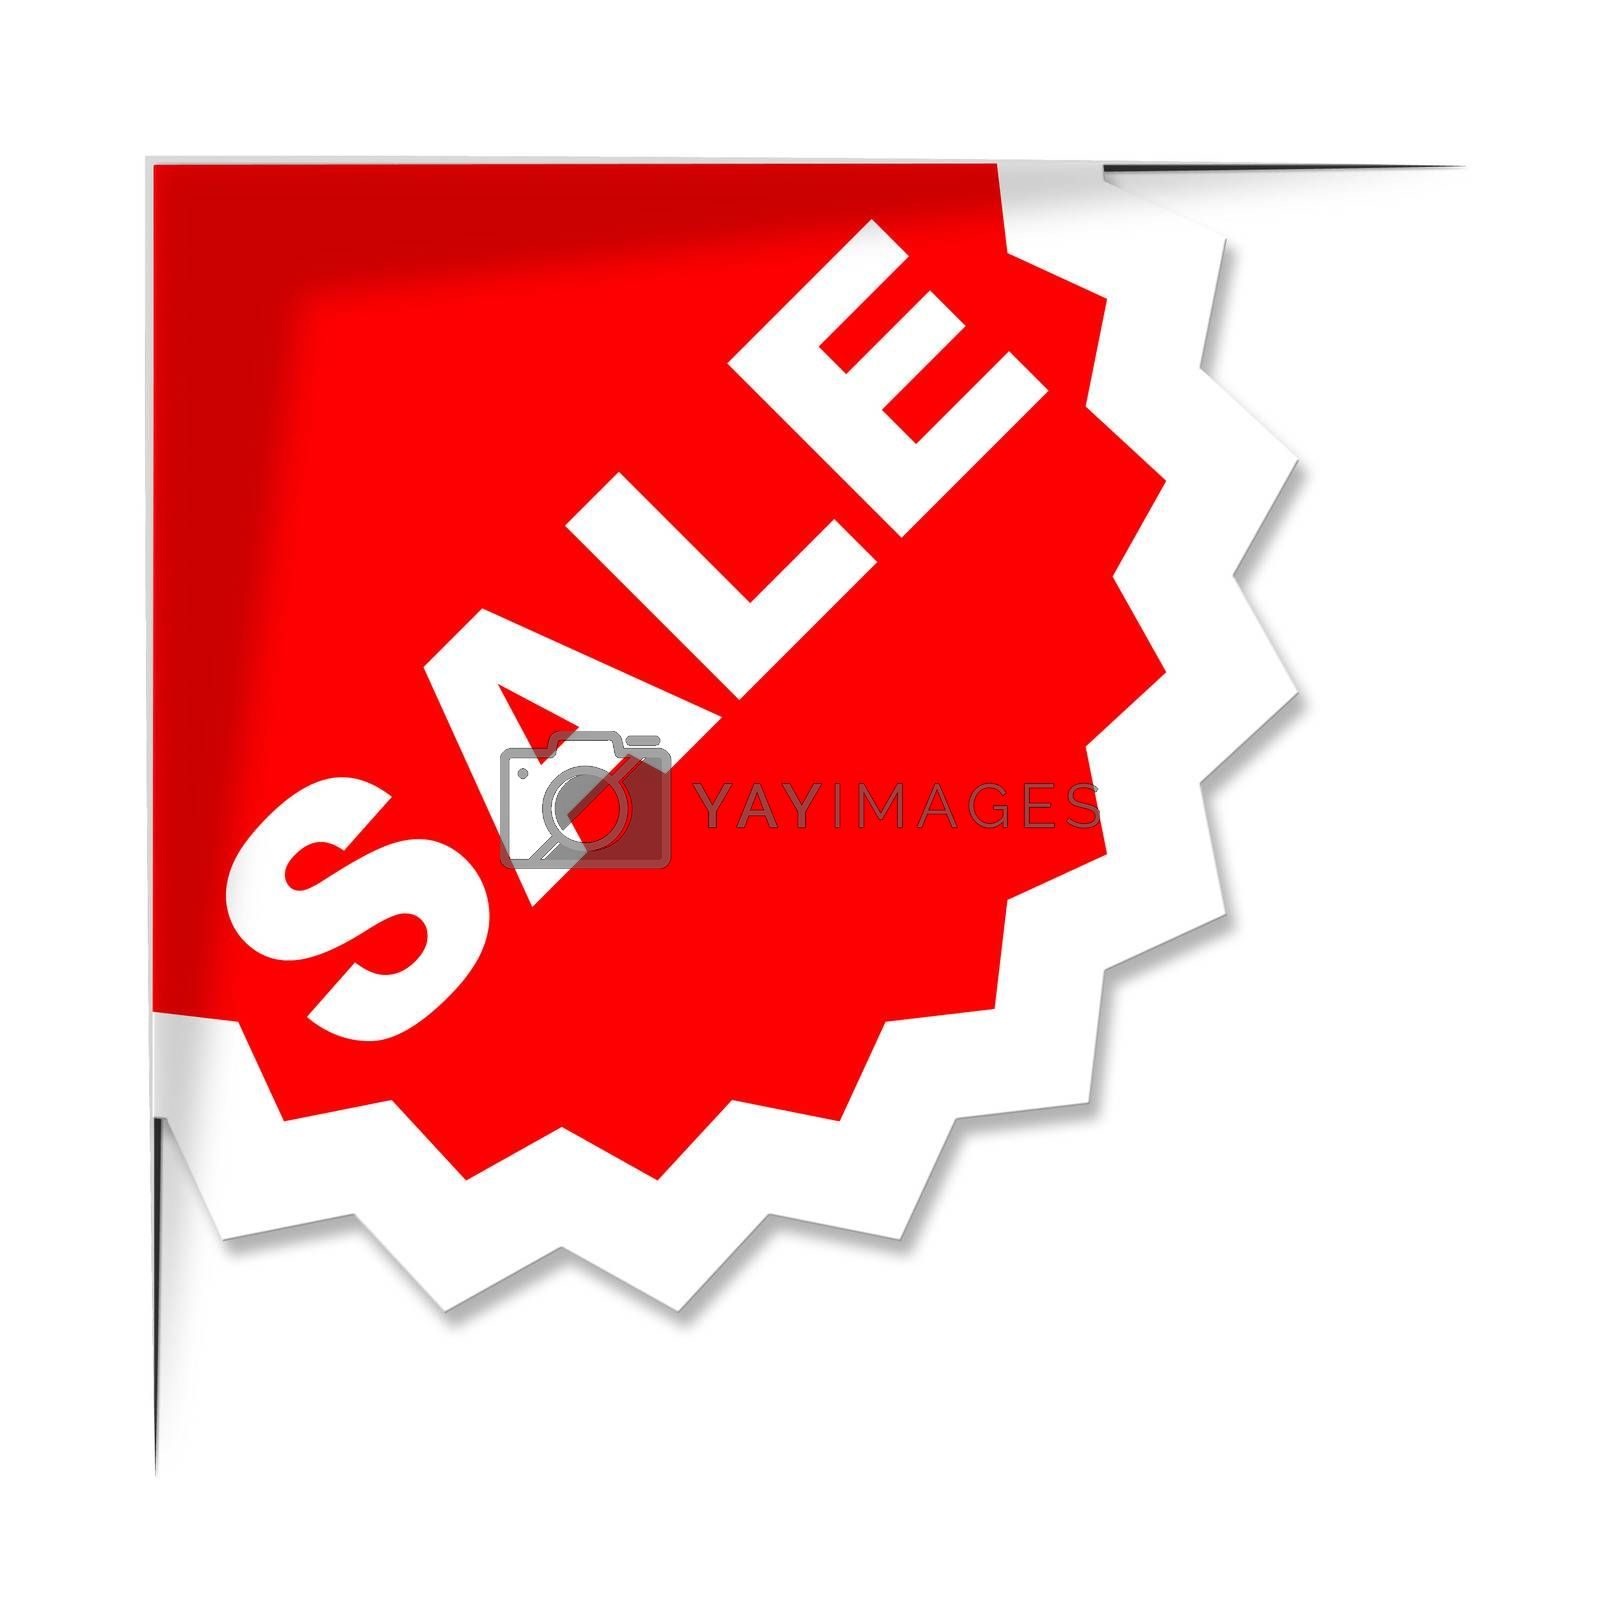 Sale Label Represents Clearance Savings And Sales by stuartmiles